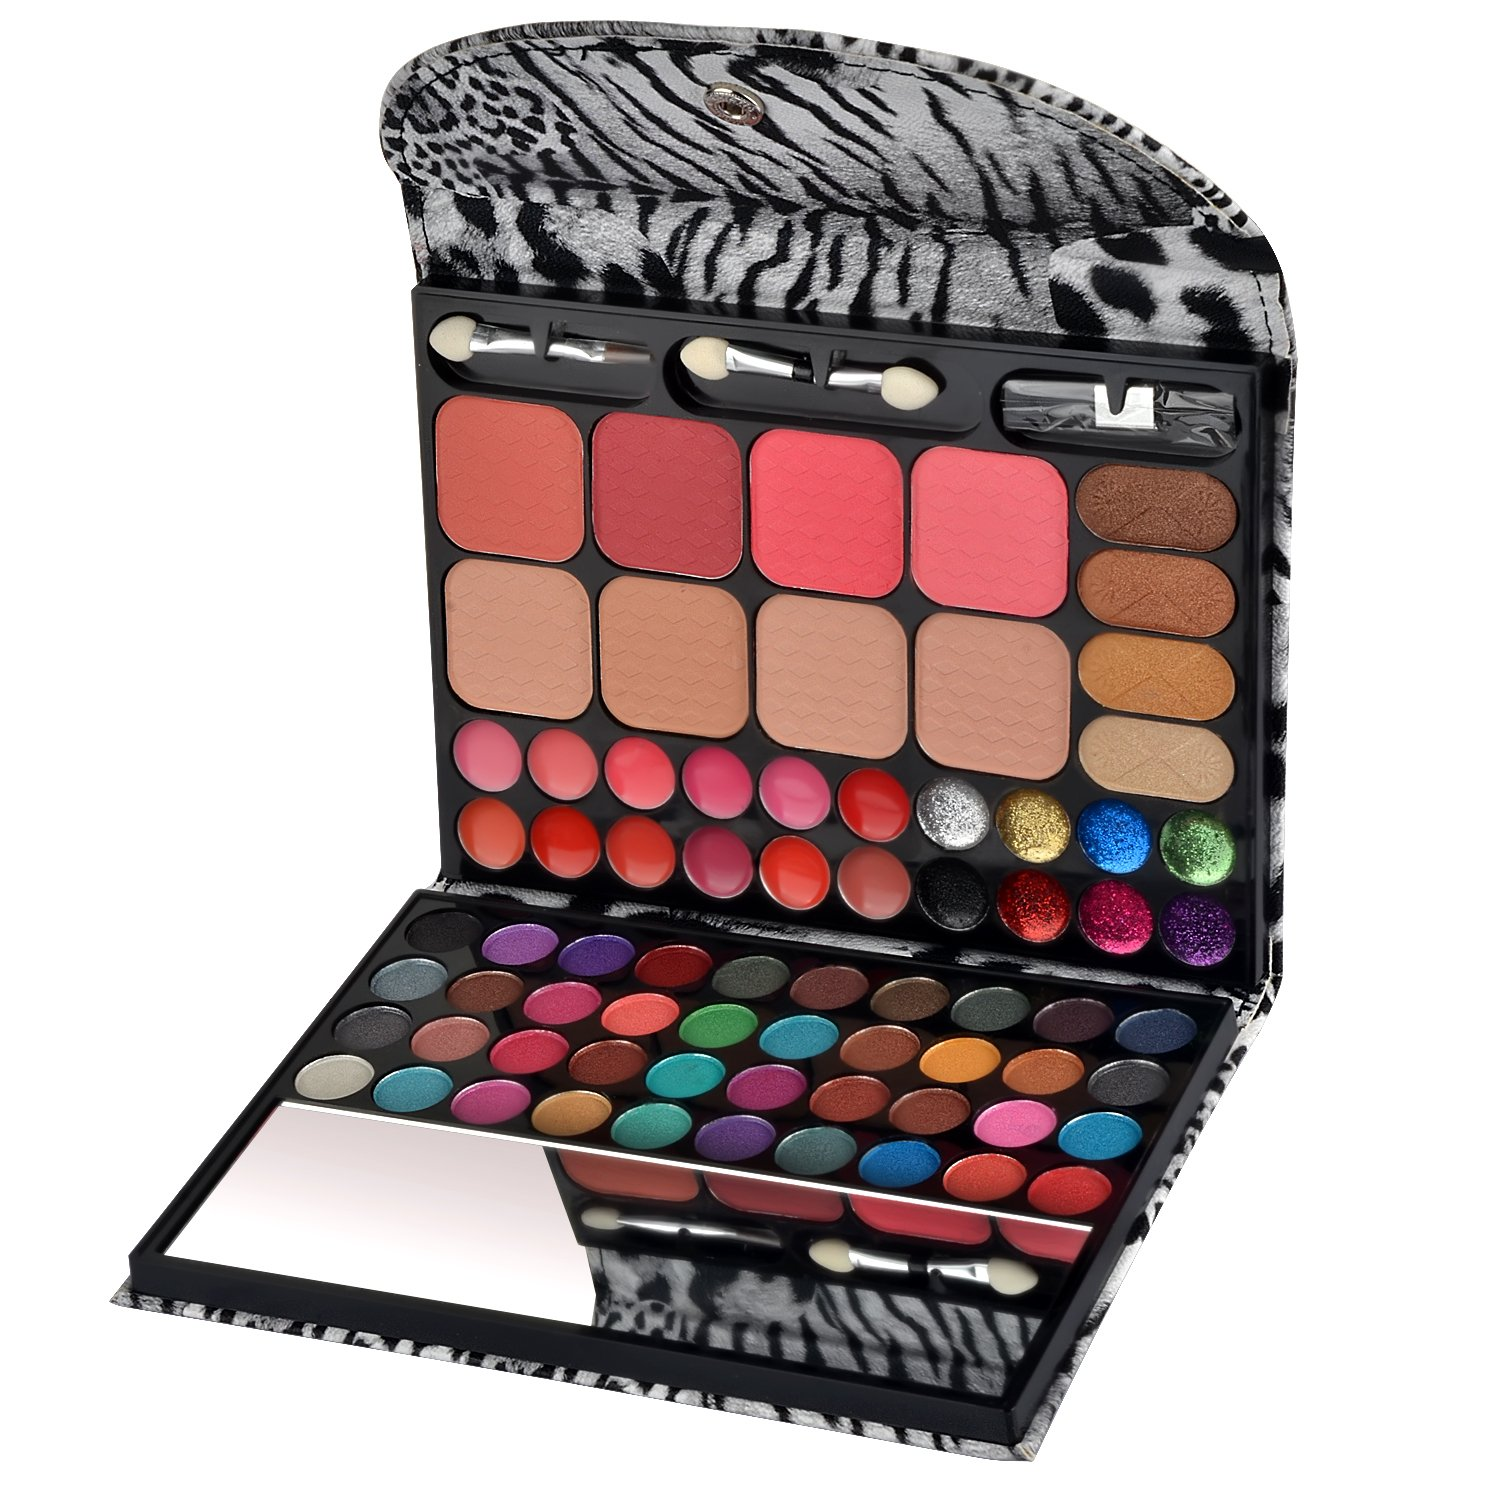 Amazoncom Ecvtop All In One Makeup Kit Professional Eye Shadow Palette Lip